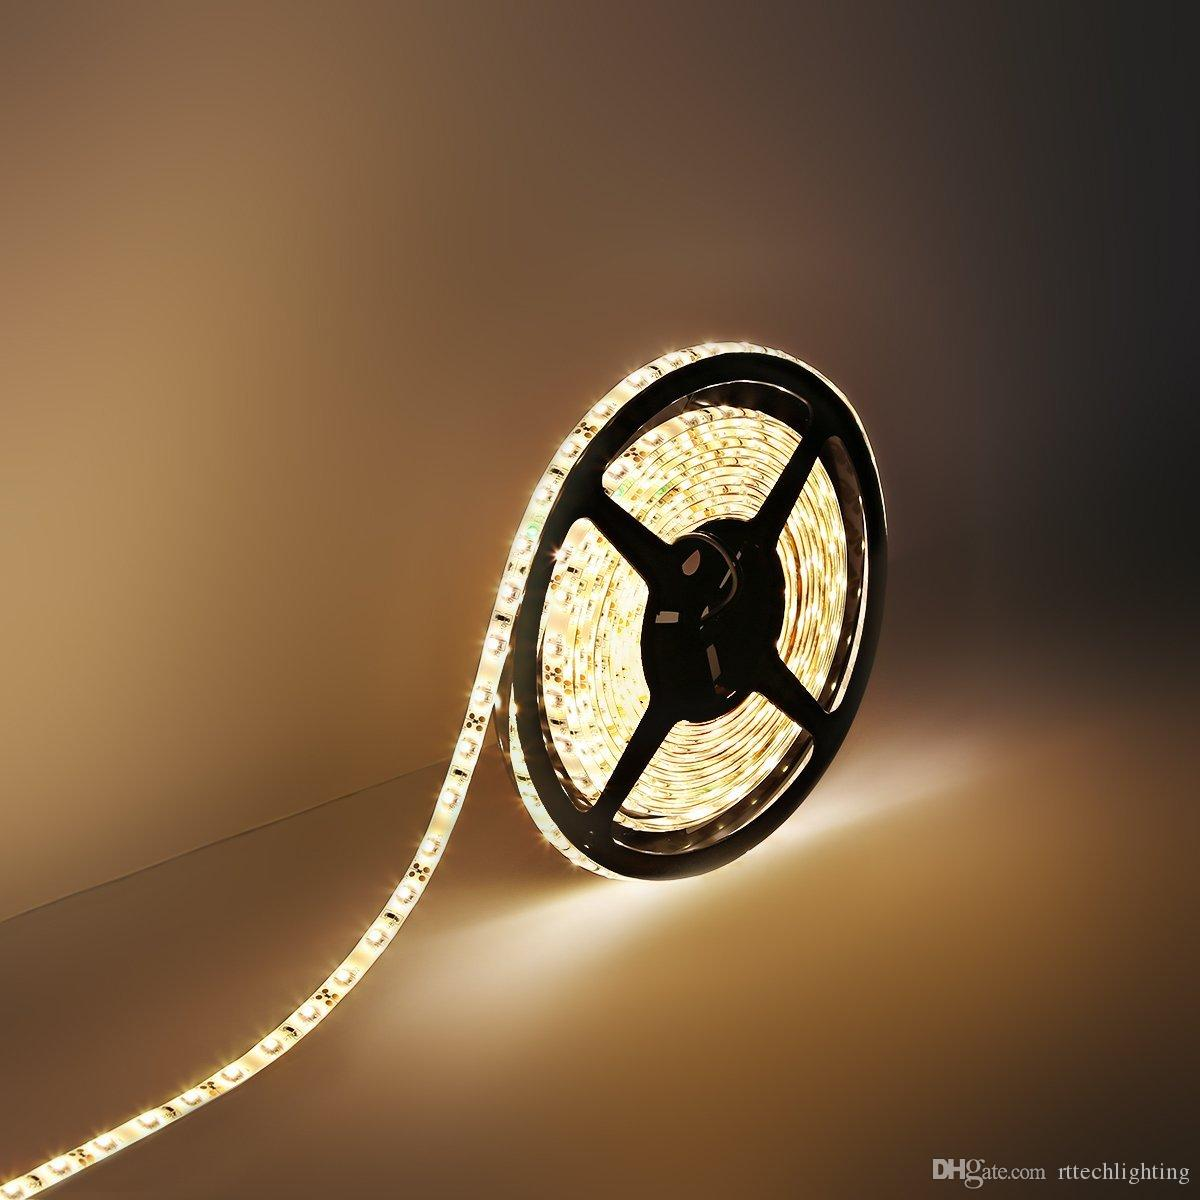 12v flexible led strip lights led tape warm white300 units 3528 12v flexible led strip lights led tape warm white300 units 3528 leds light strips length 5m 5050 led strip led strip controller from rttechlighting mozeypictures Image collections